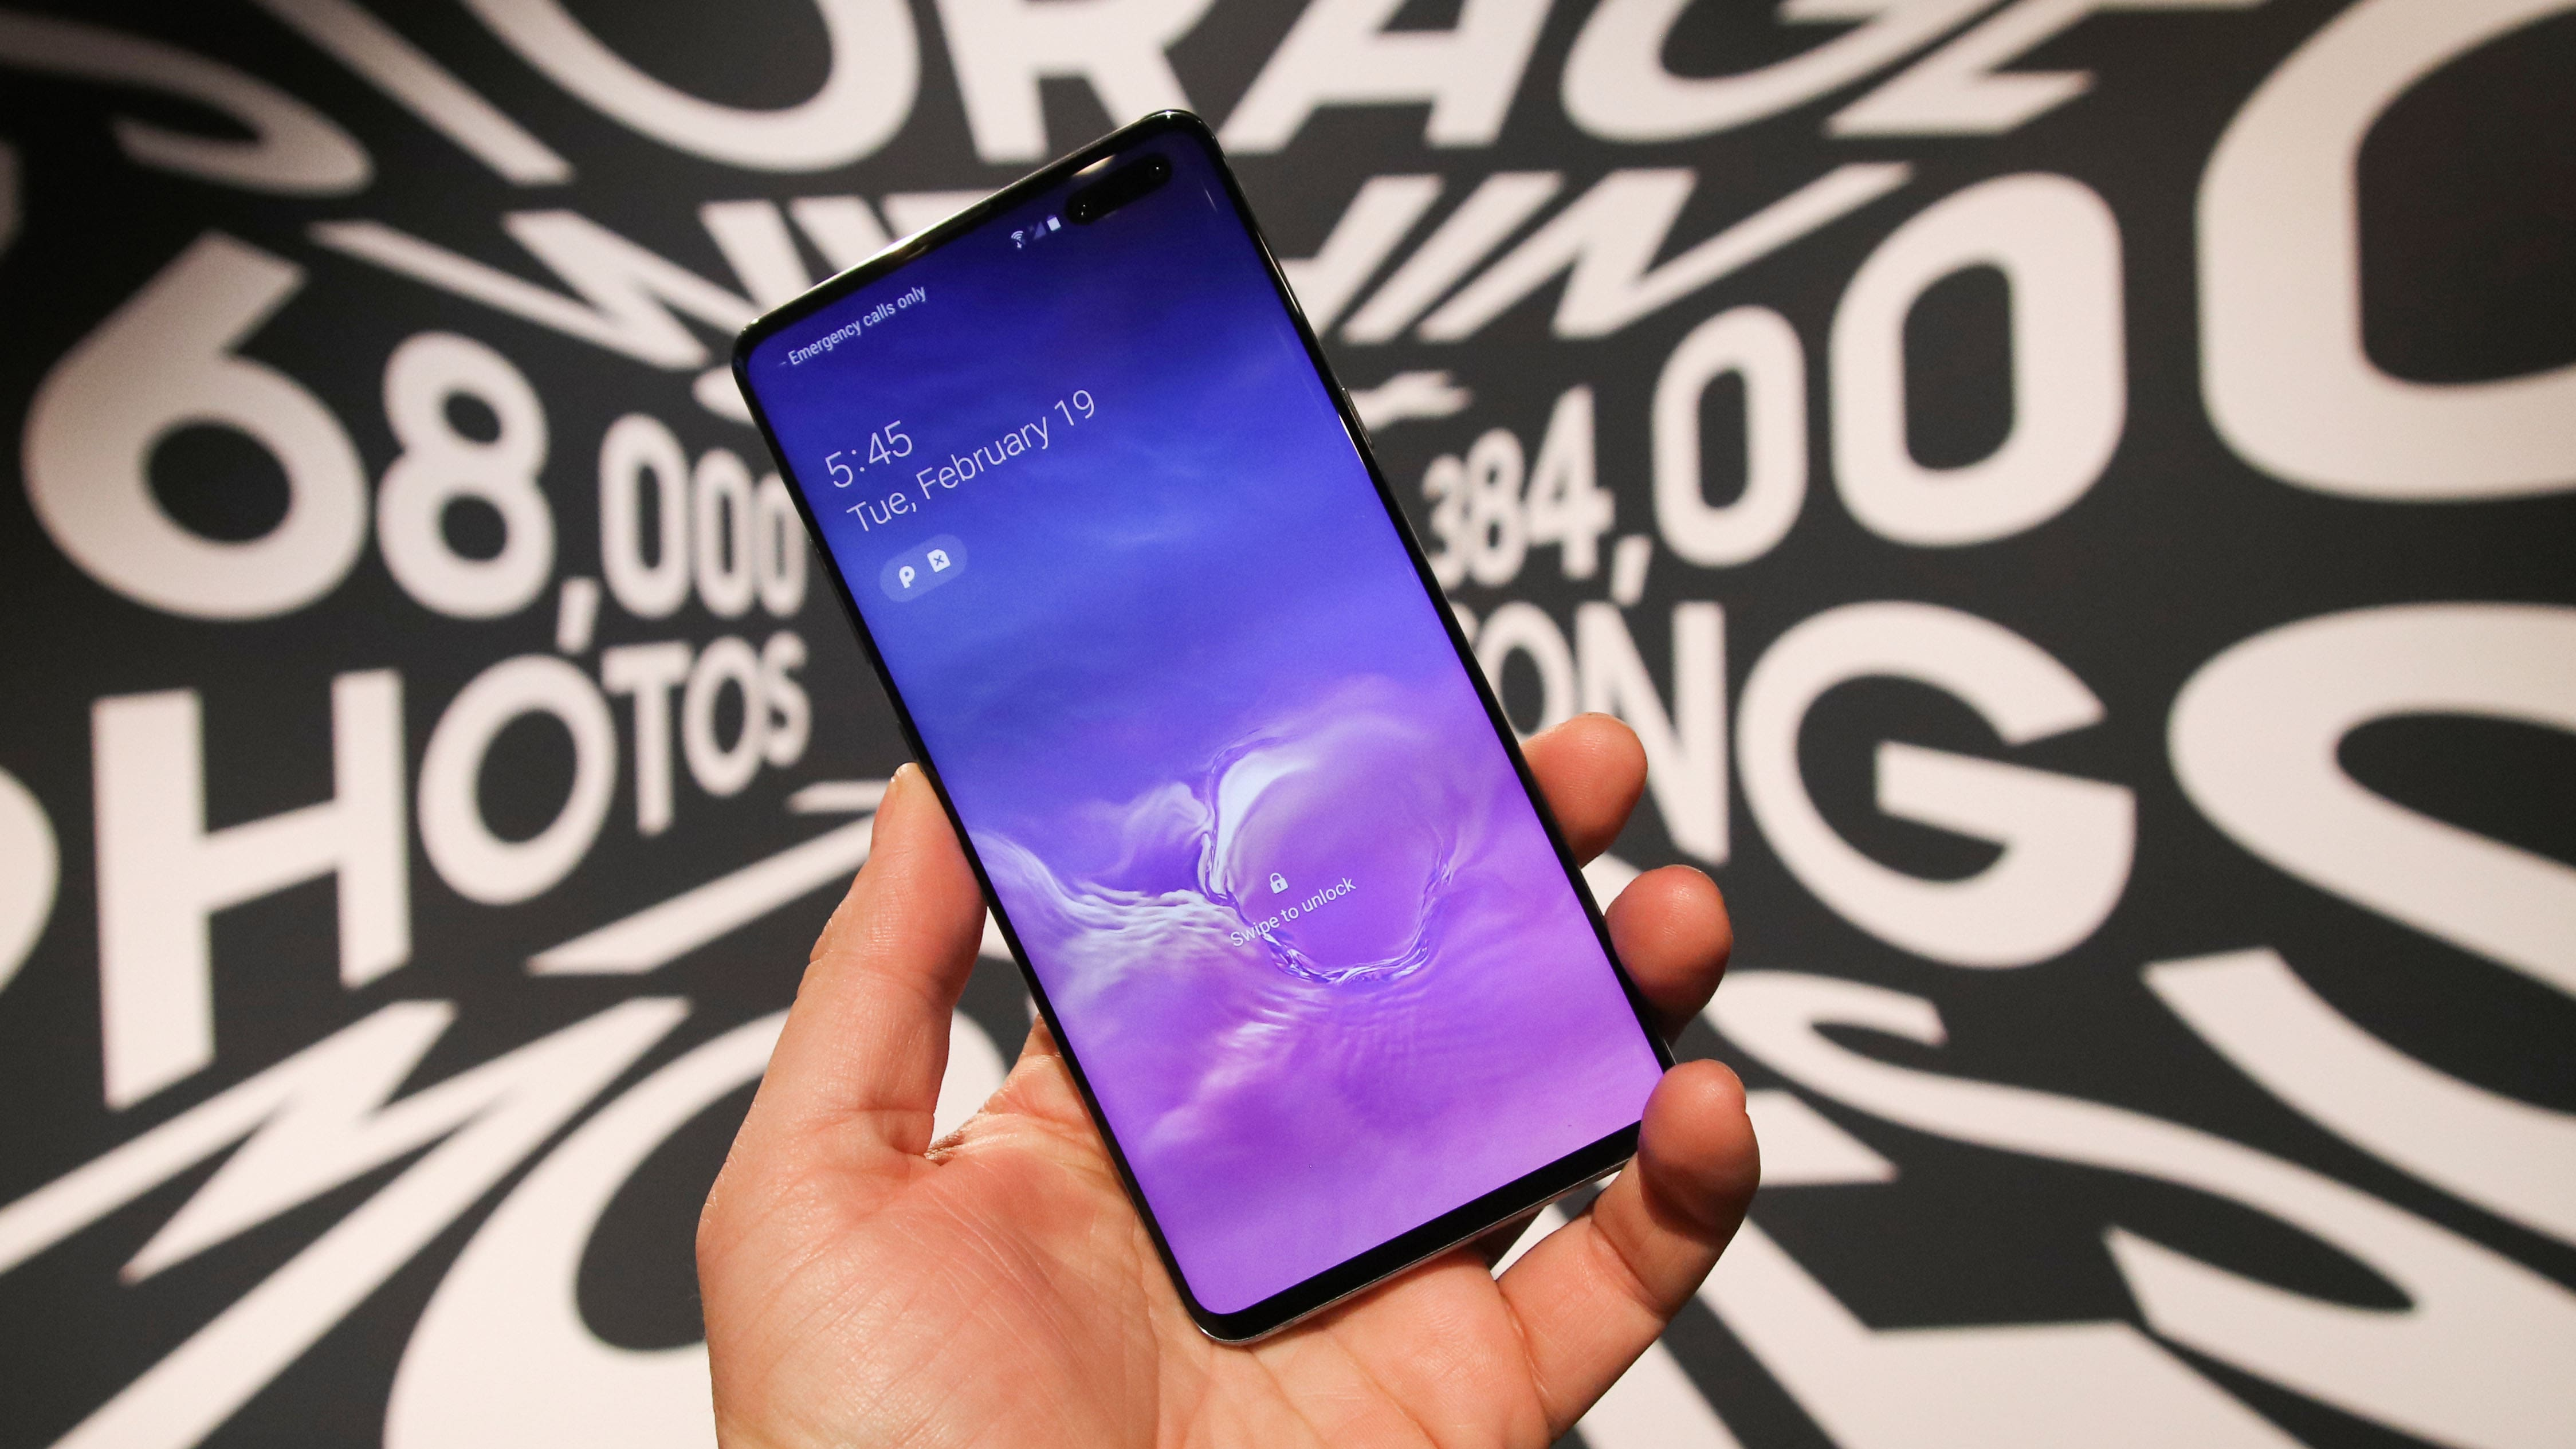 3. Samsung Galaxy S10 5G – Still One of the Best 5G Phones in 2020